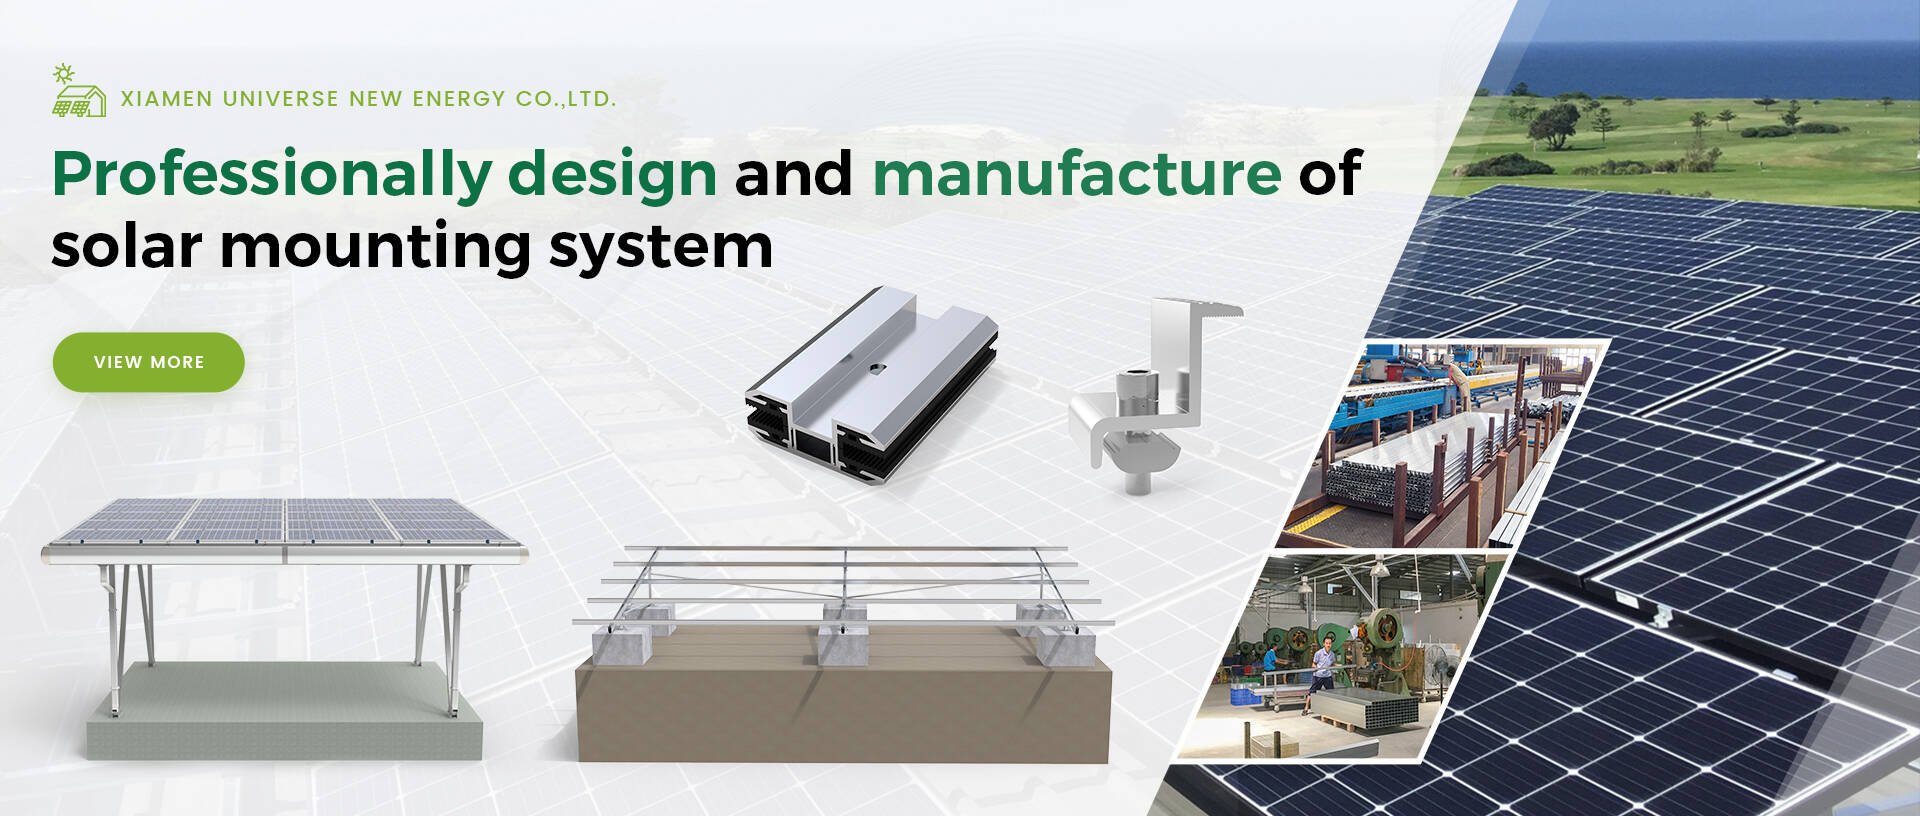 Solar mounting system manufacturer and design